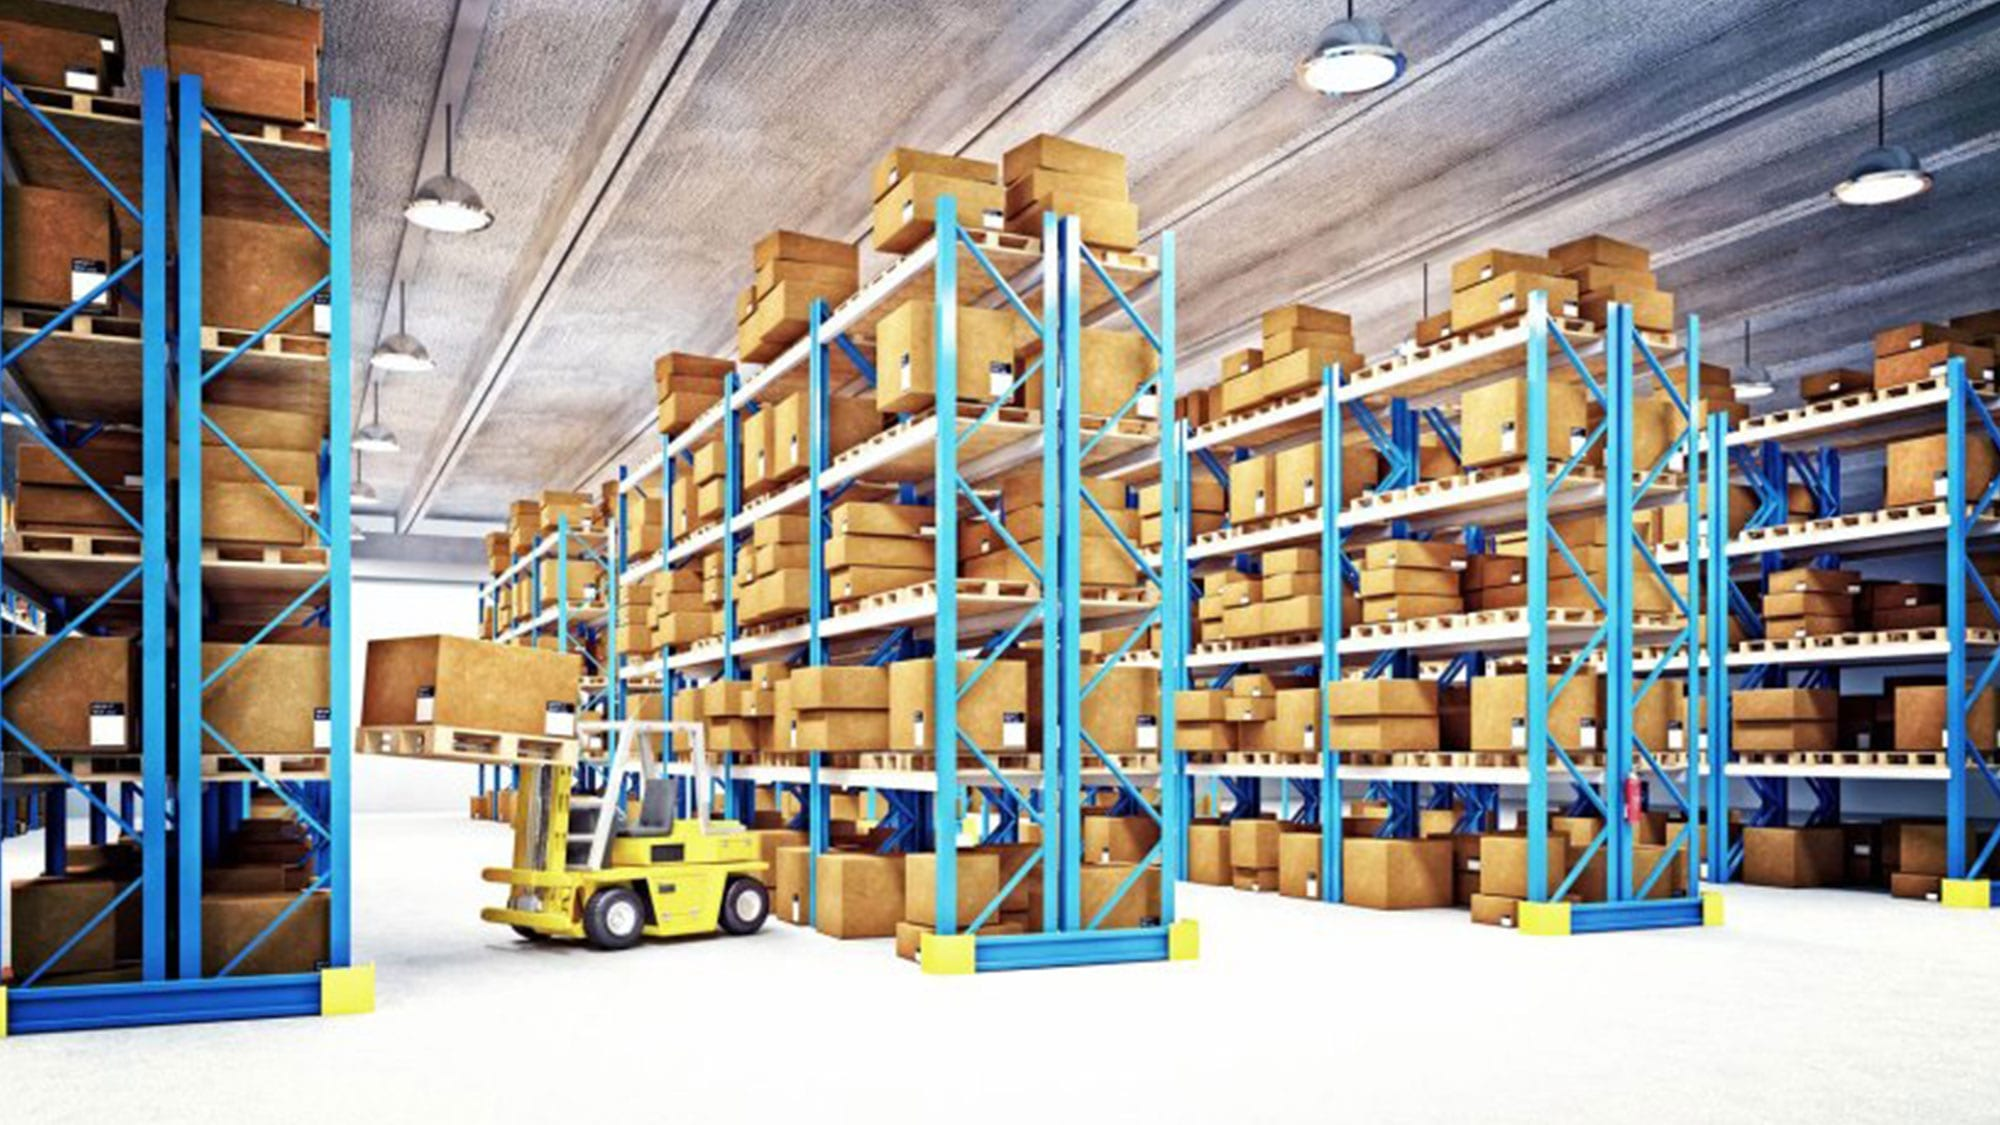 contract logistics services dta dta operates state of art a class logistic centers in convenient locations two main warehouses are in wroclaw prologis park iii and pruszkow millenium park